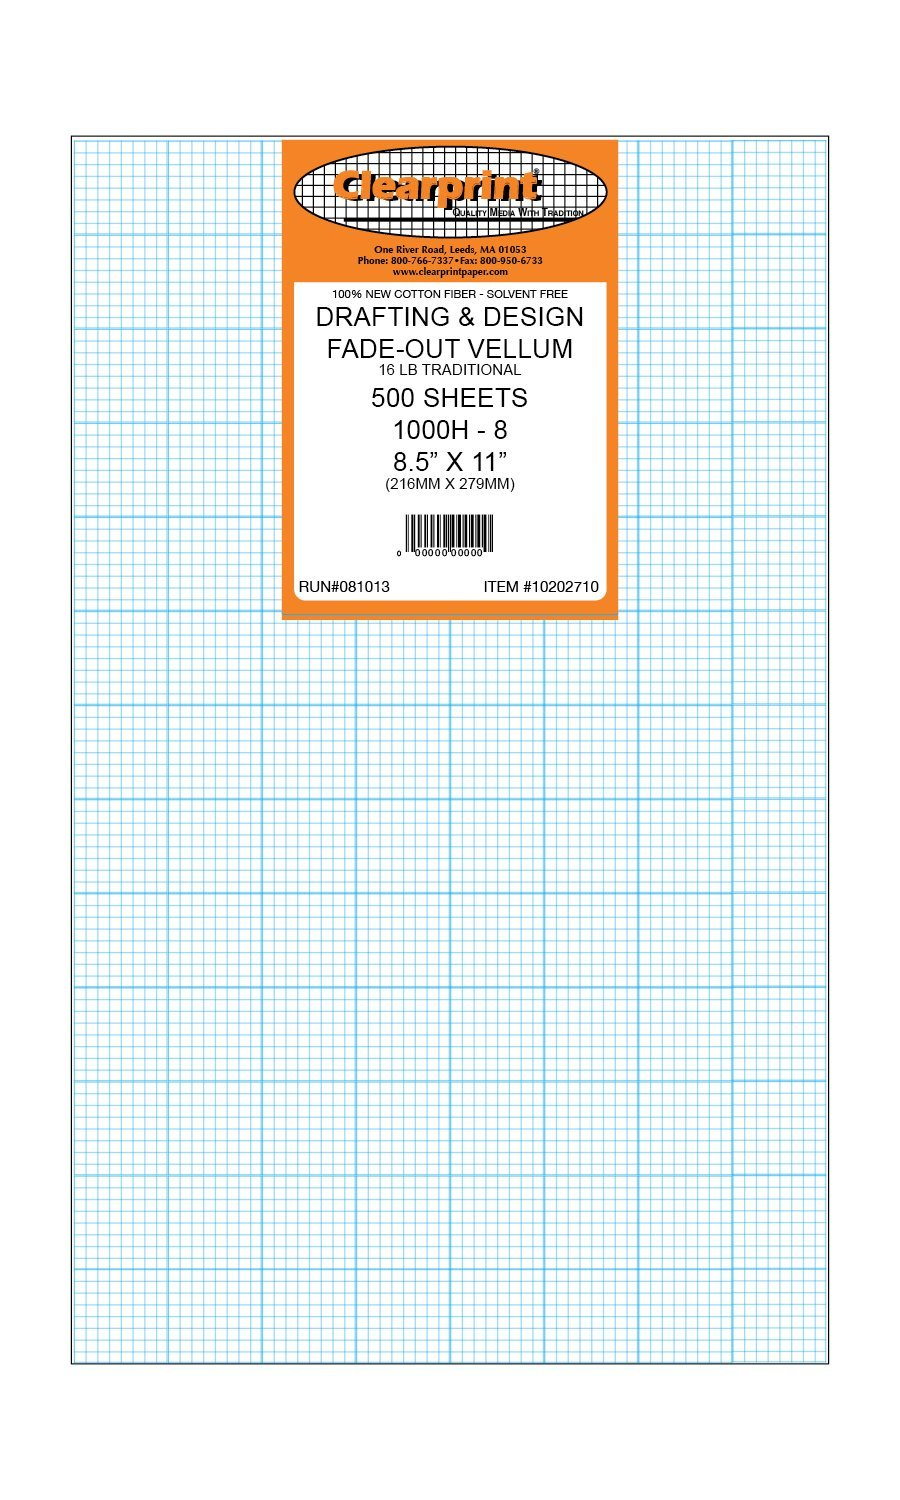 Clearprint 1000H Design Vellum Sheets with Printed Fade-Out 8x8 Grid, 16 Lb., 100% Cotton, 8-1/2 x 11 Inches, 500 Sheets Per Pack, 1 Each (10202710)